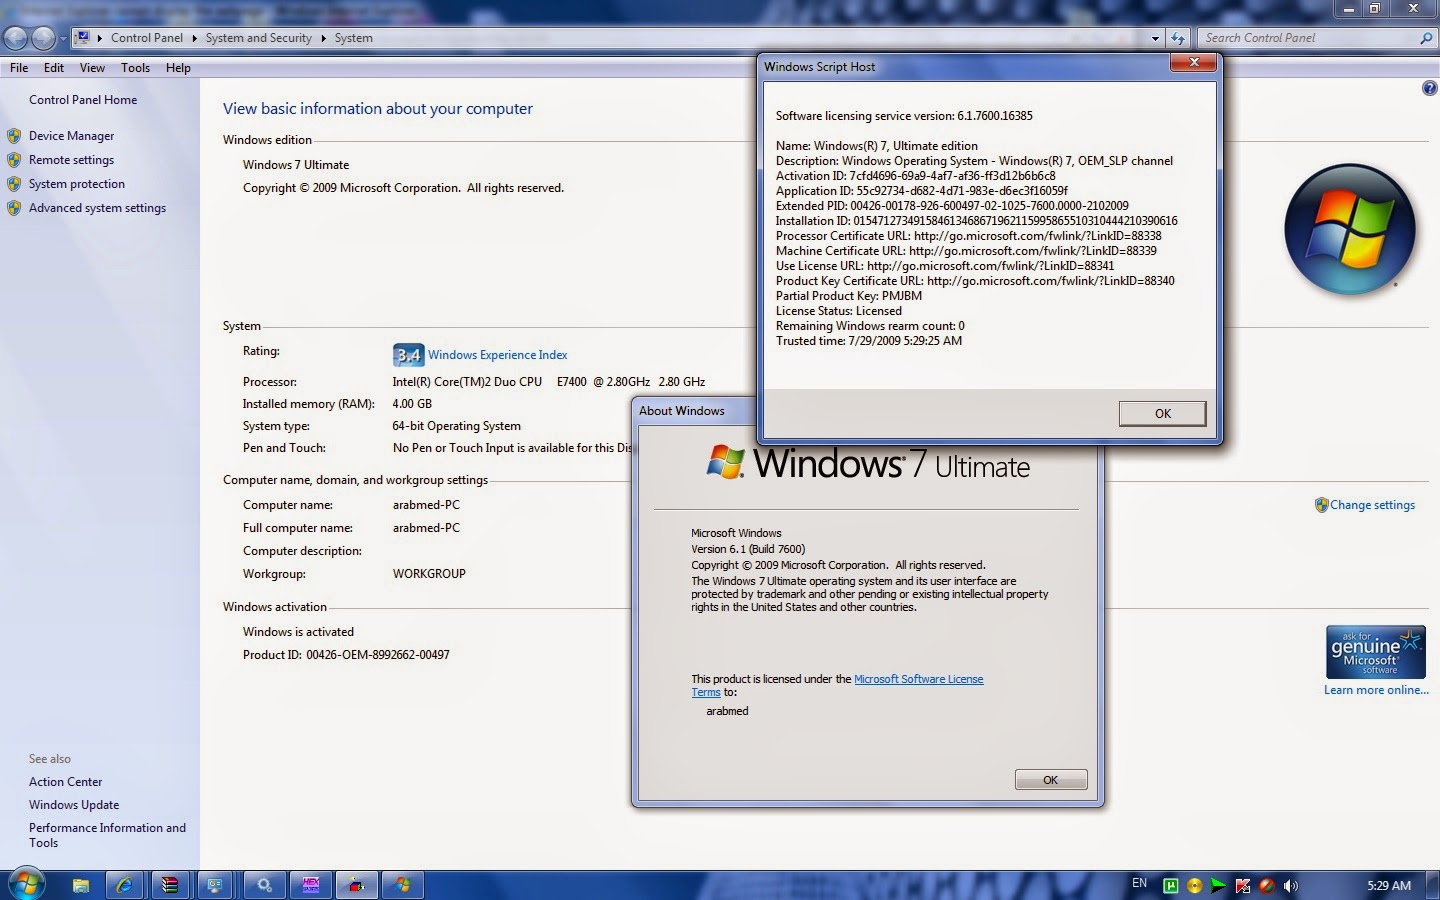 Activate Windows 7 Ultimate with OEM Product Key x64 Bit User Guide